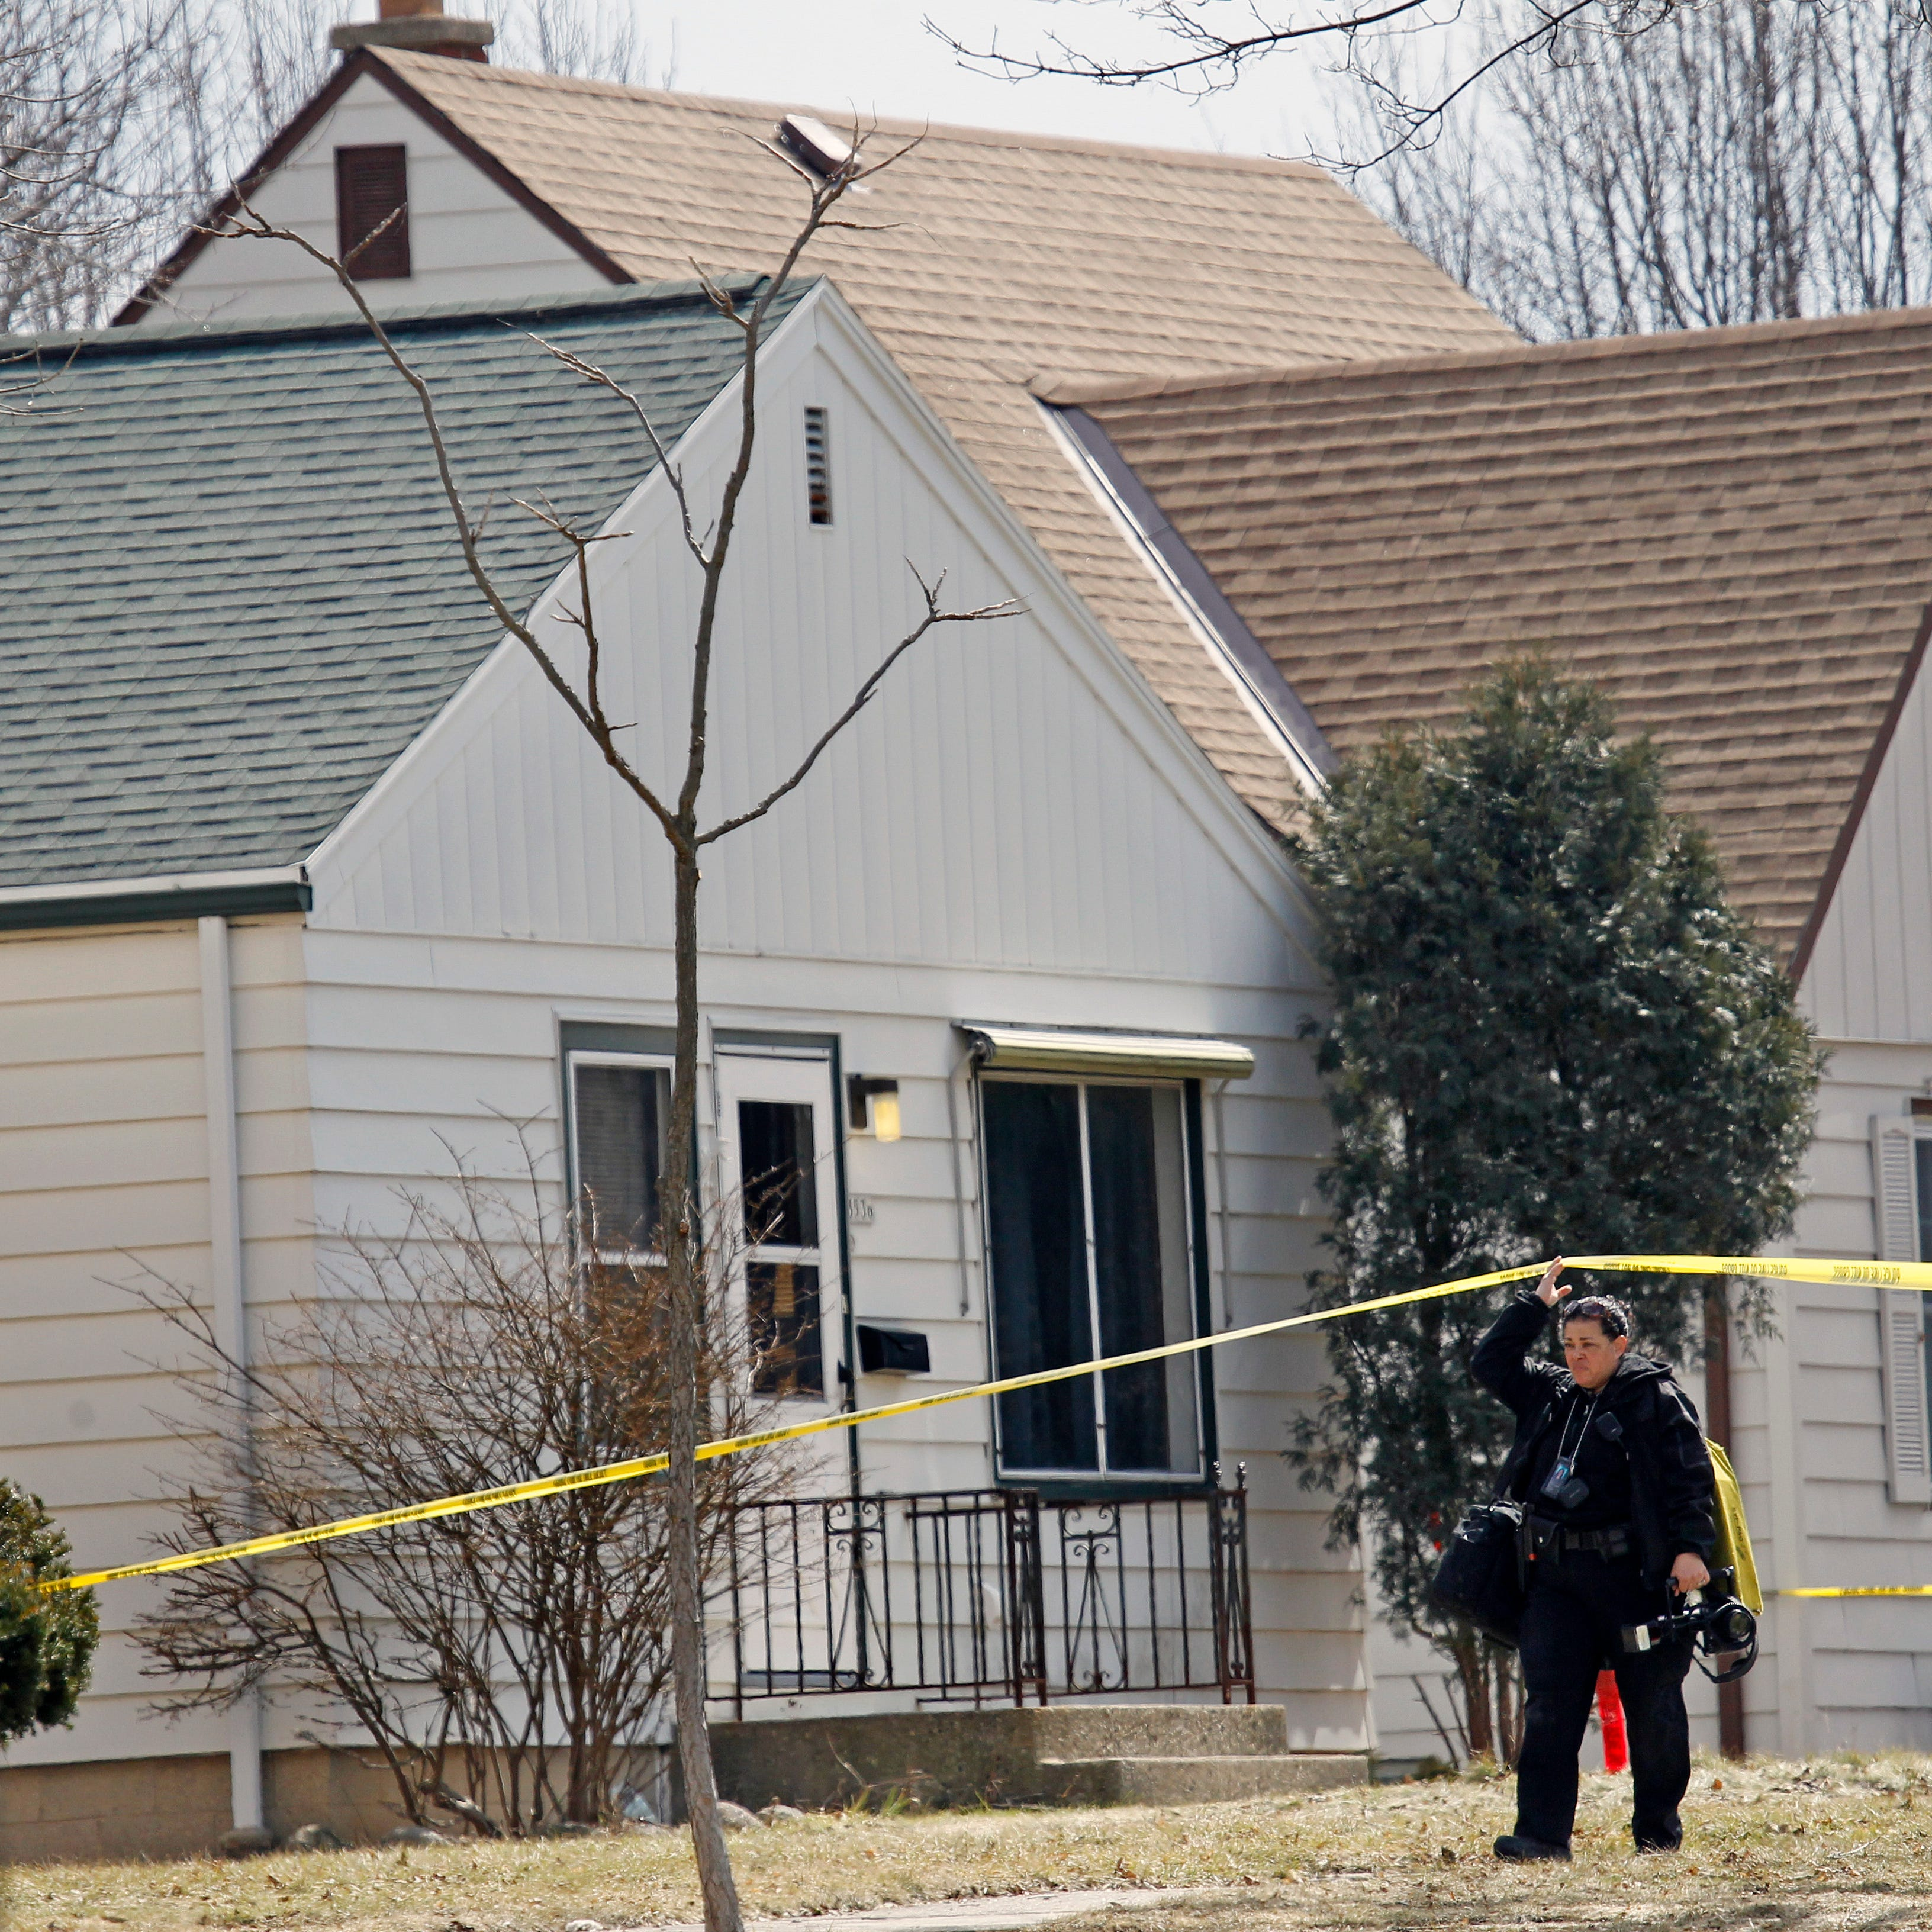 Milwaukee police identify woman killed in suspected murder-suicide